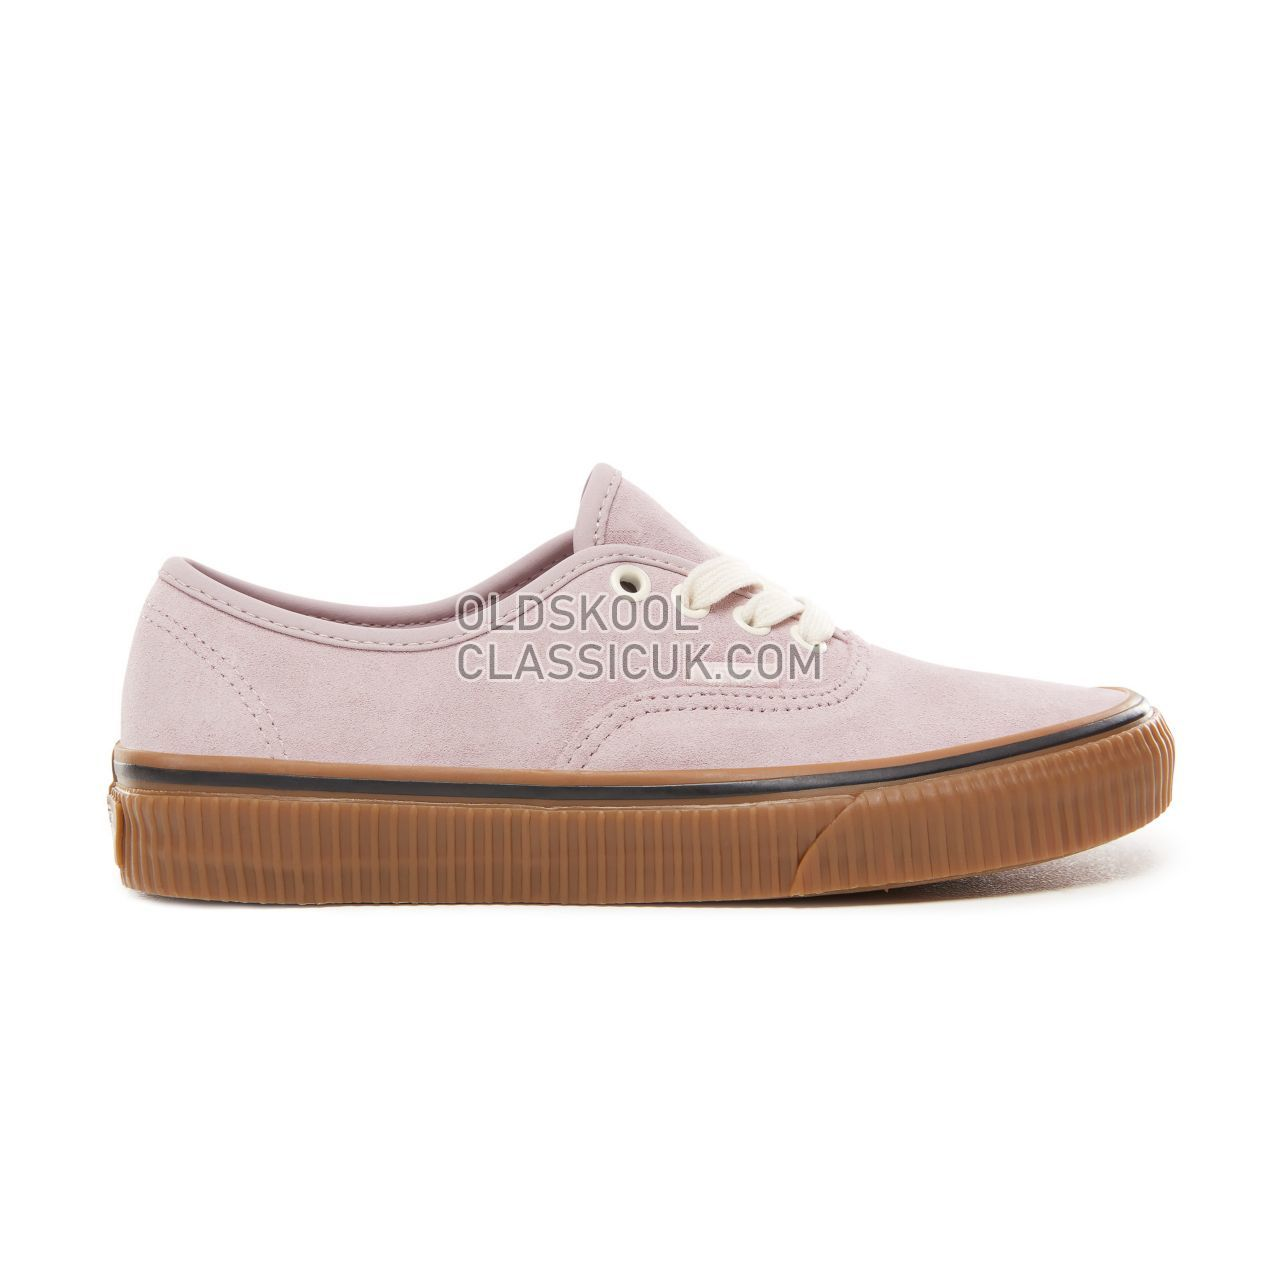 Vans Suede Authentic Sneakers Womens (Suede) Violet Ice/Embossed Gum VN0A38EMUKP Shoes